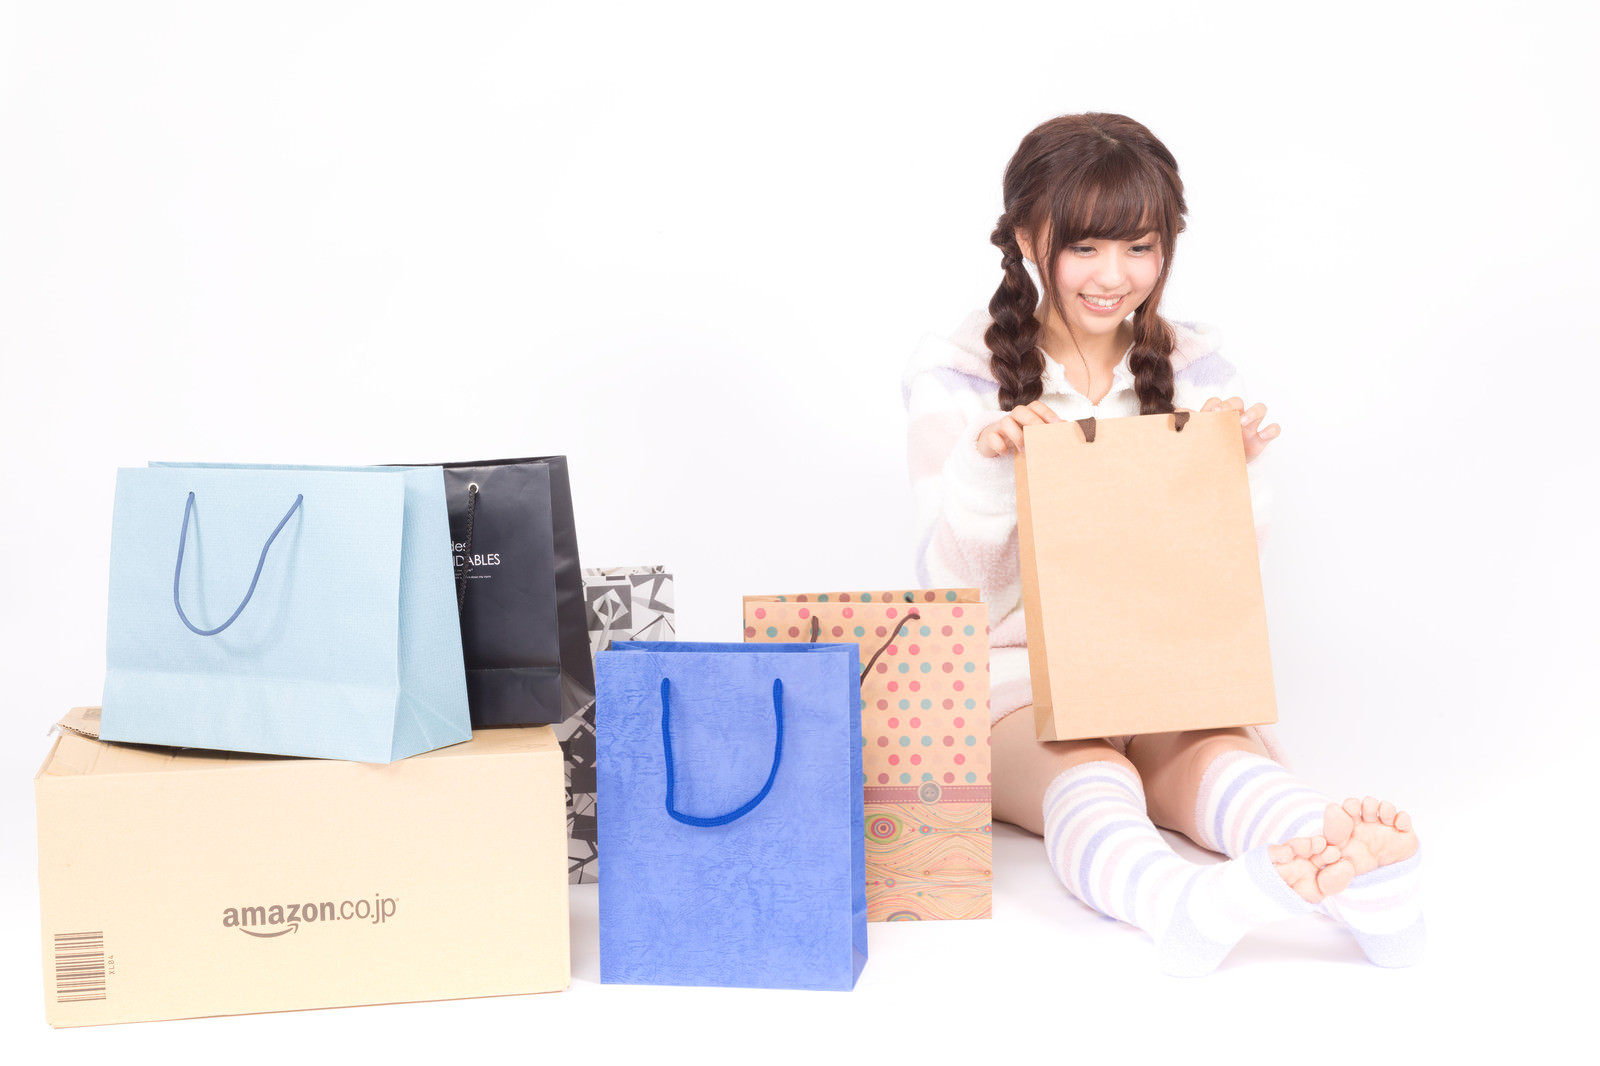 Yuka Happy with presents